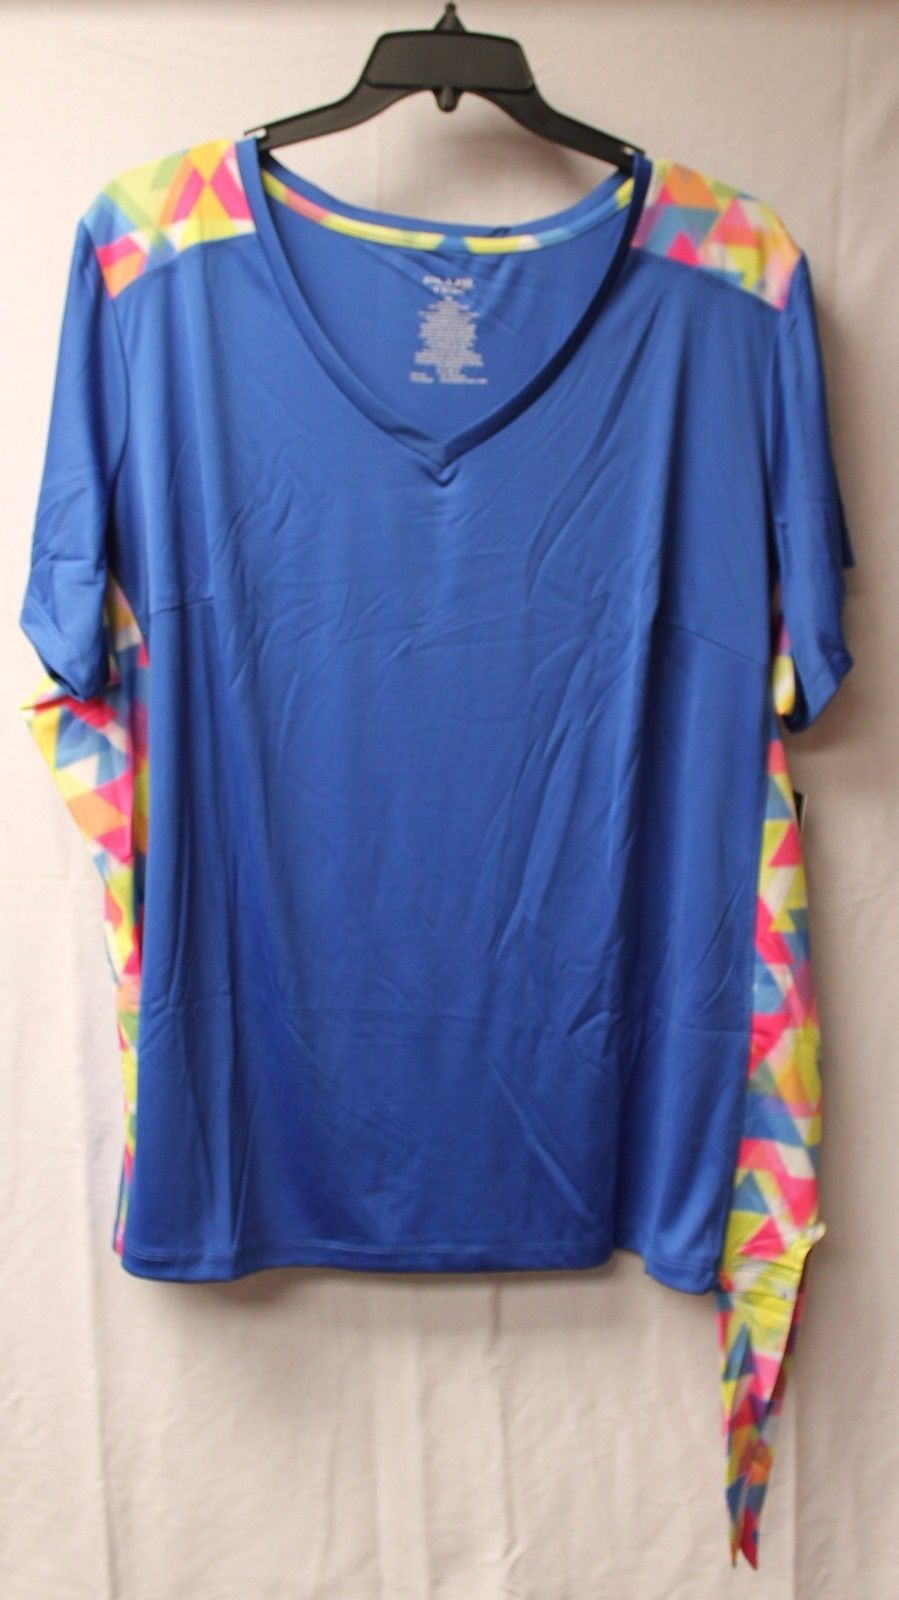 Primary image for NEW WOMENS PLUS SIZE 4X BRITE BLUE TEE SHIRT W GEO PRINT SIDES & CUTE SIDE TIE